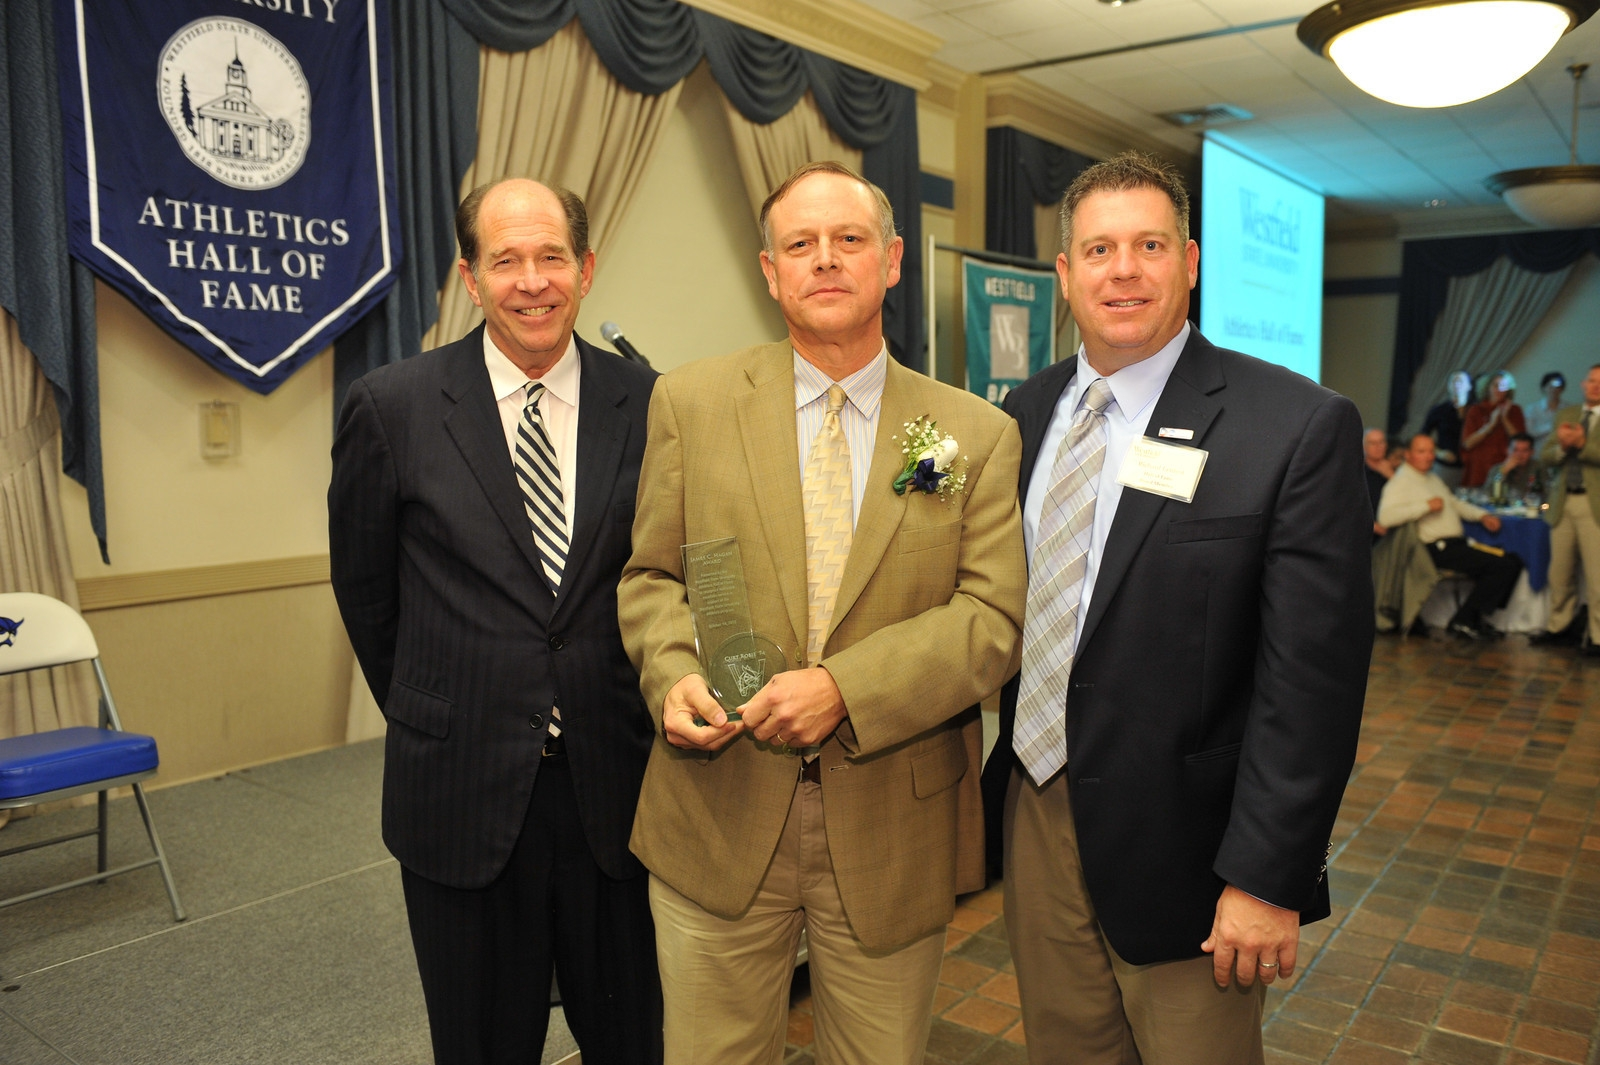 Pictured, left to right, are: Westfield State President Evan S. Dobelle, Curt Robie, and Westfield State athletics director Richard Lenfest. (Courtesy of WSU SID)